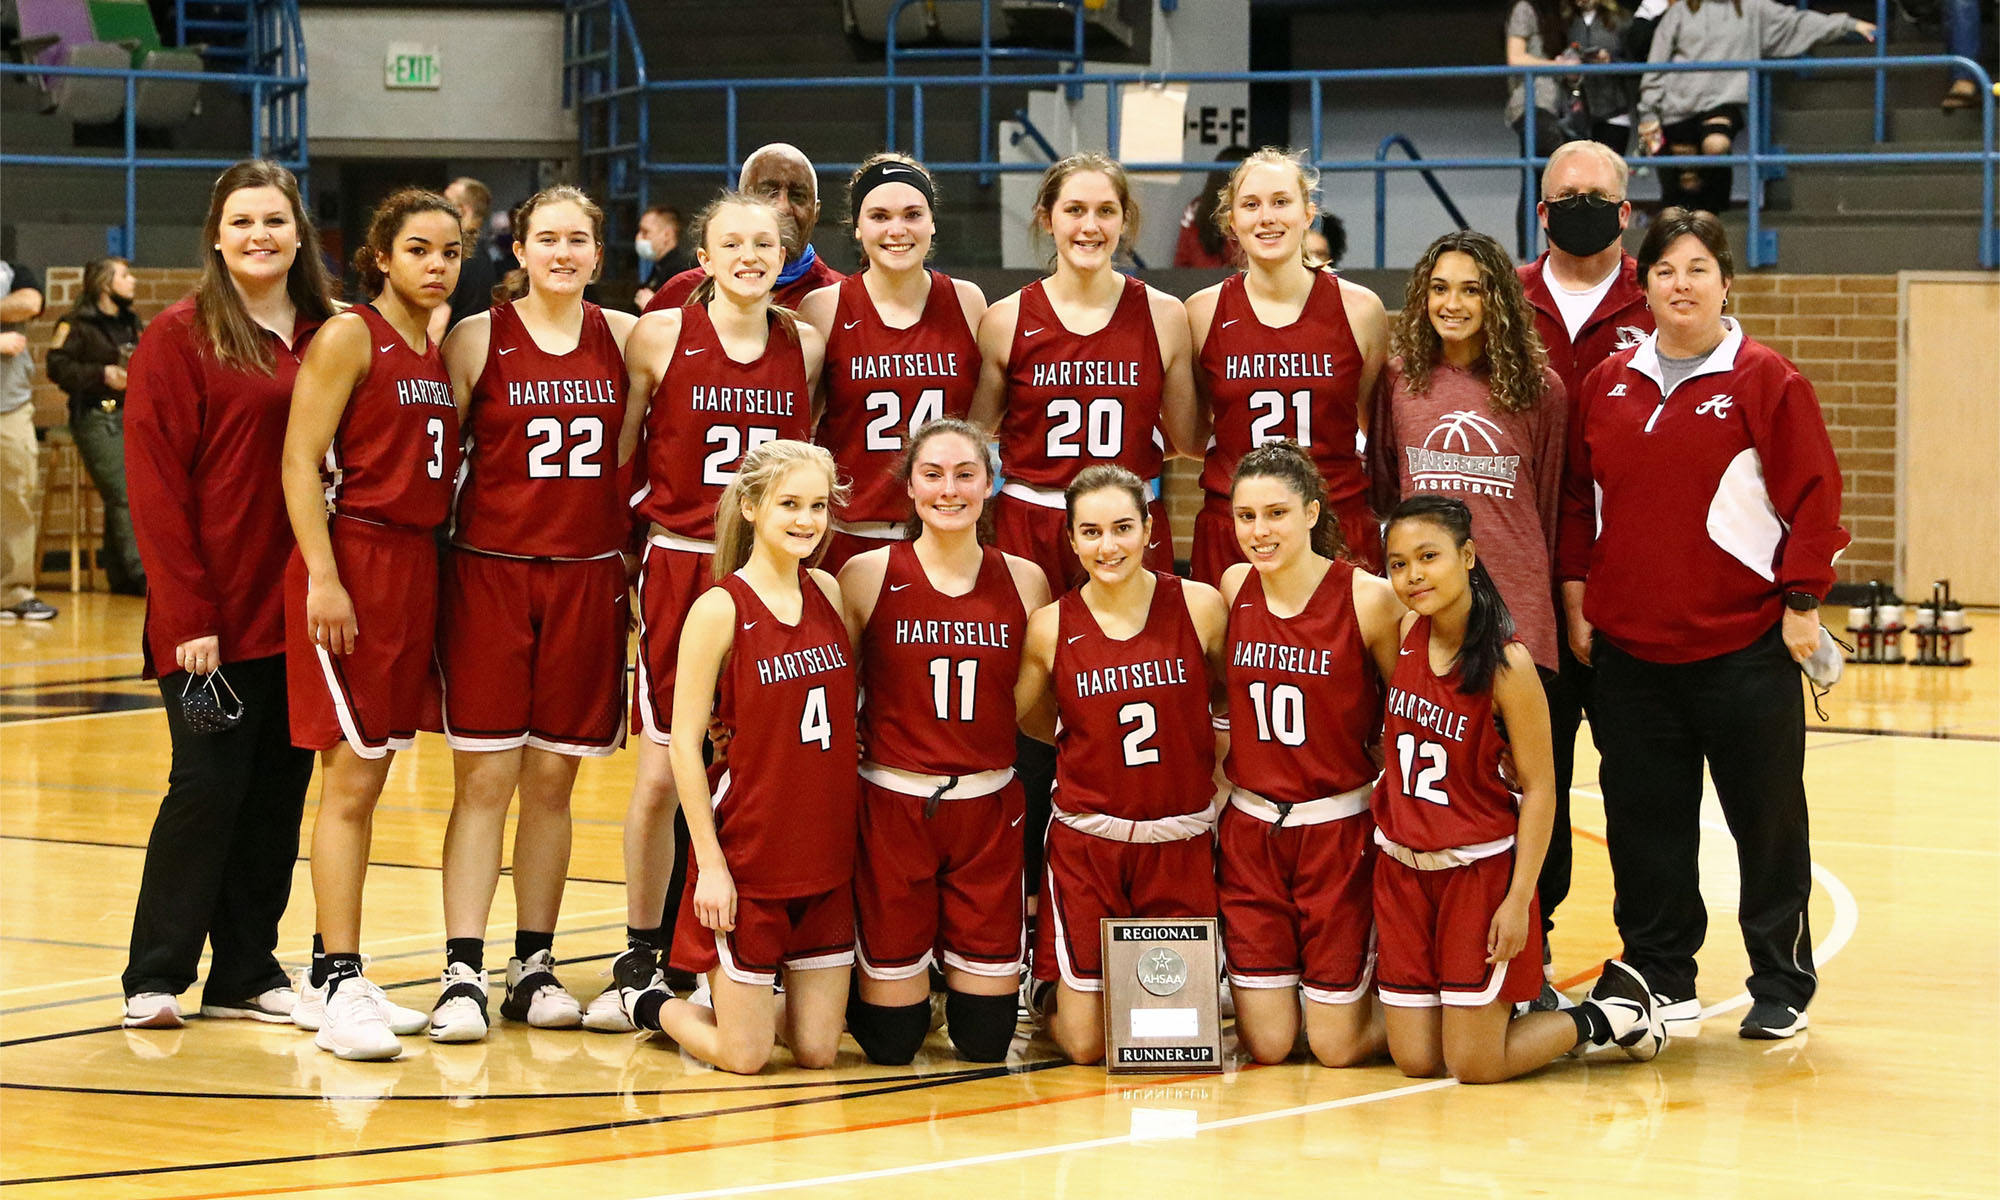 Lady Tigers' season ends with a Regional Finals loss to Hazel Green